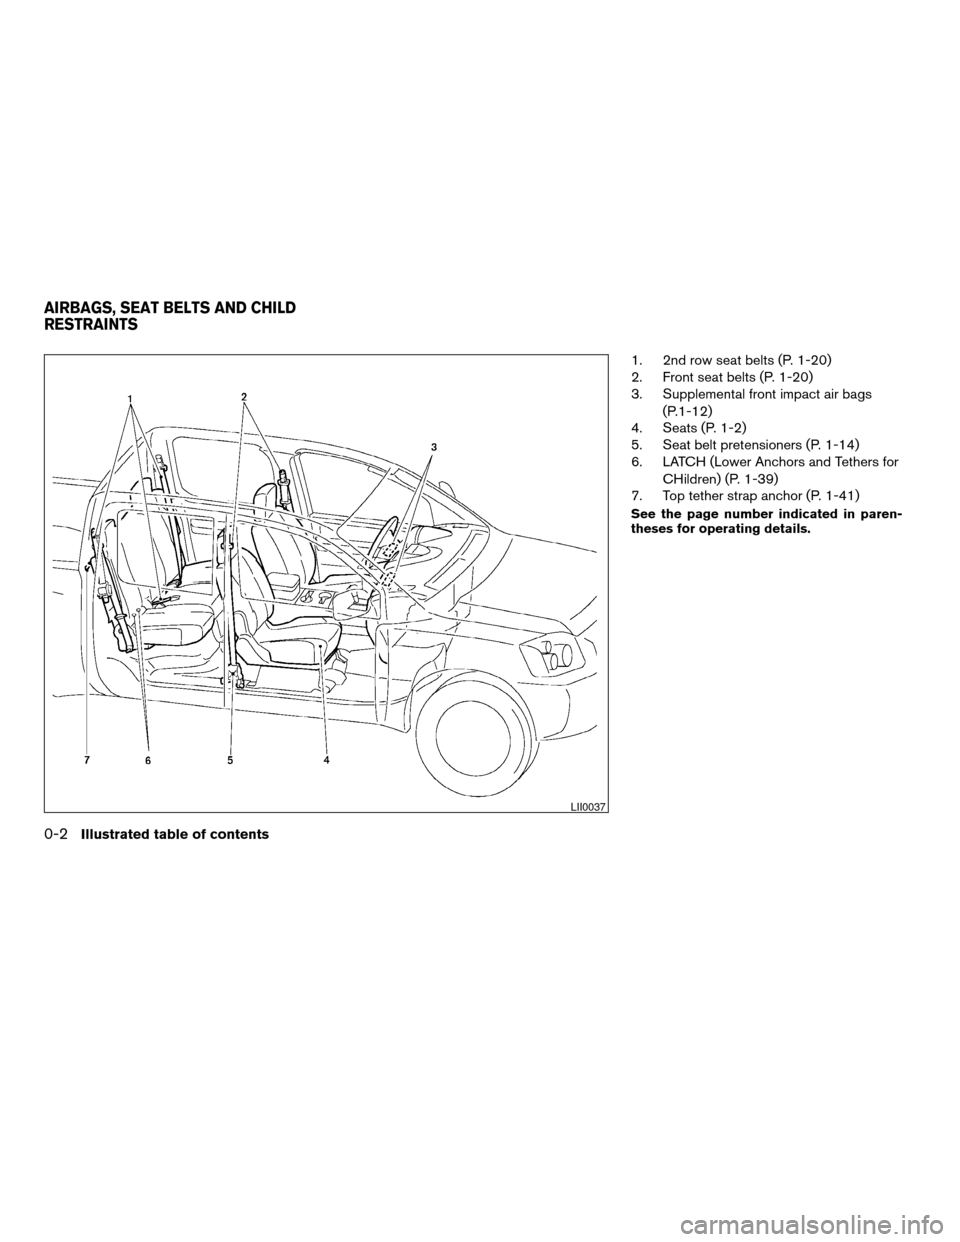 NISSAN FRONTIER 2004 D22 / 1.G Owners Manual